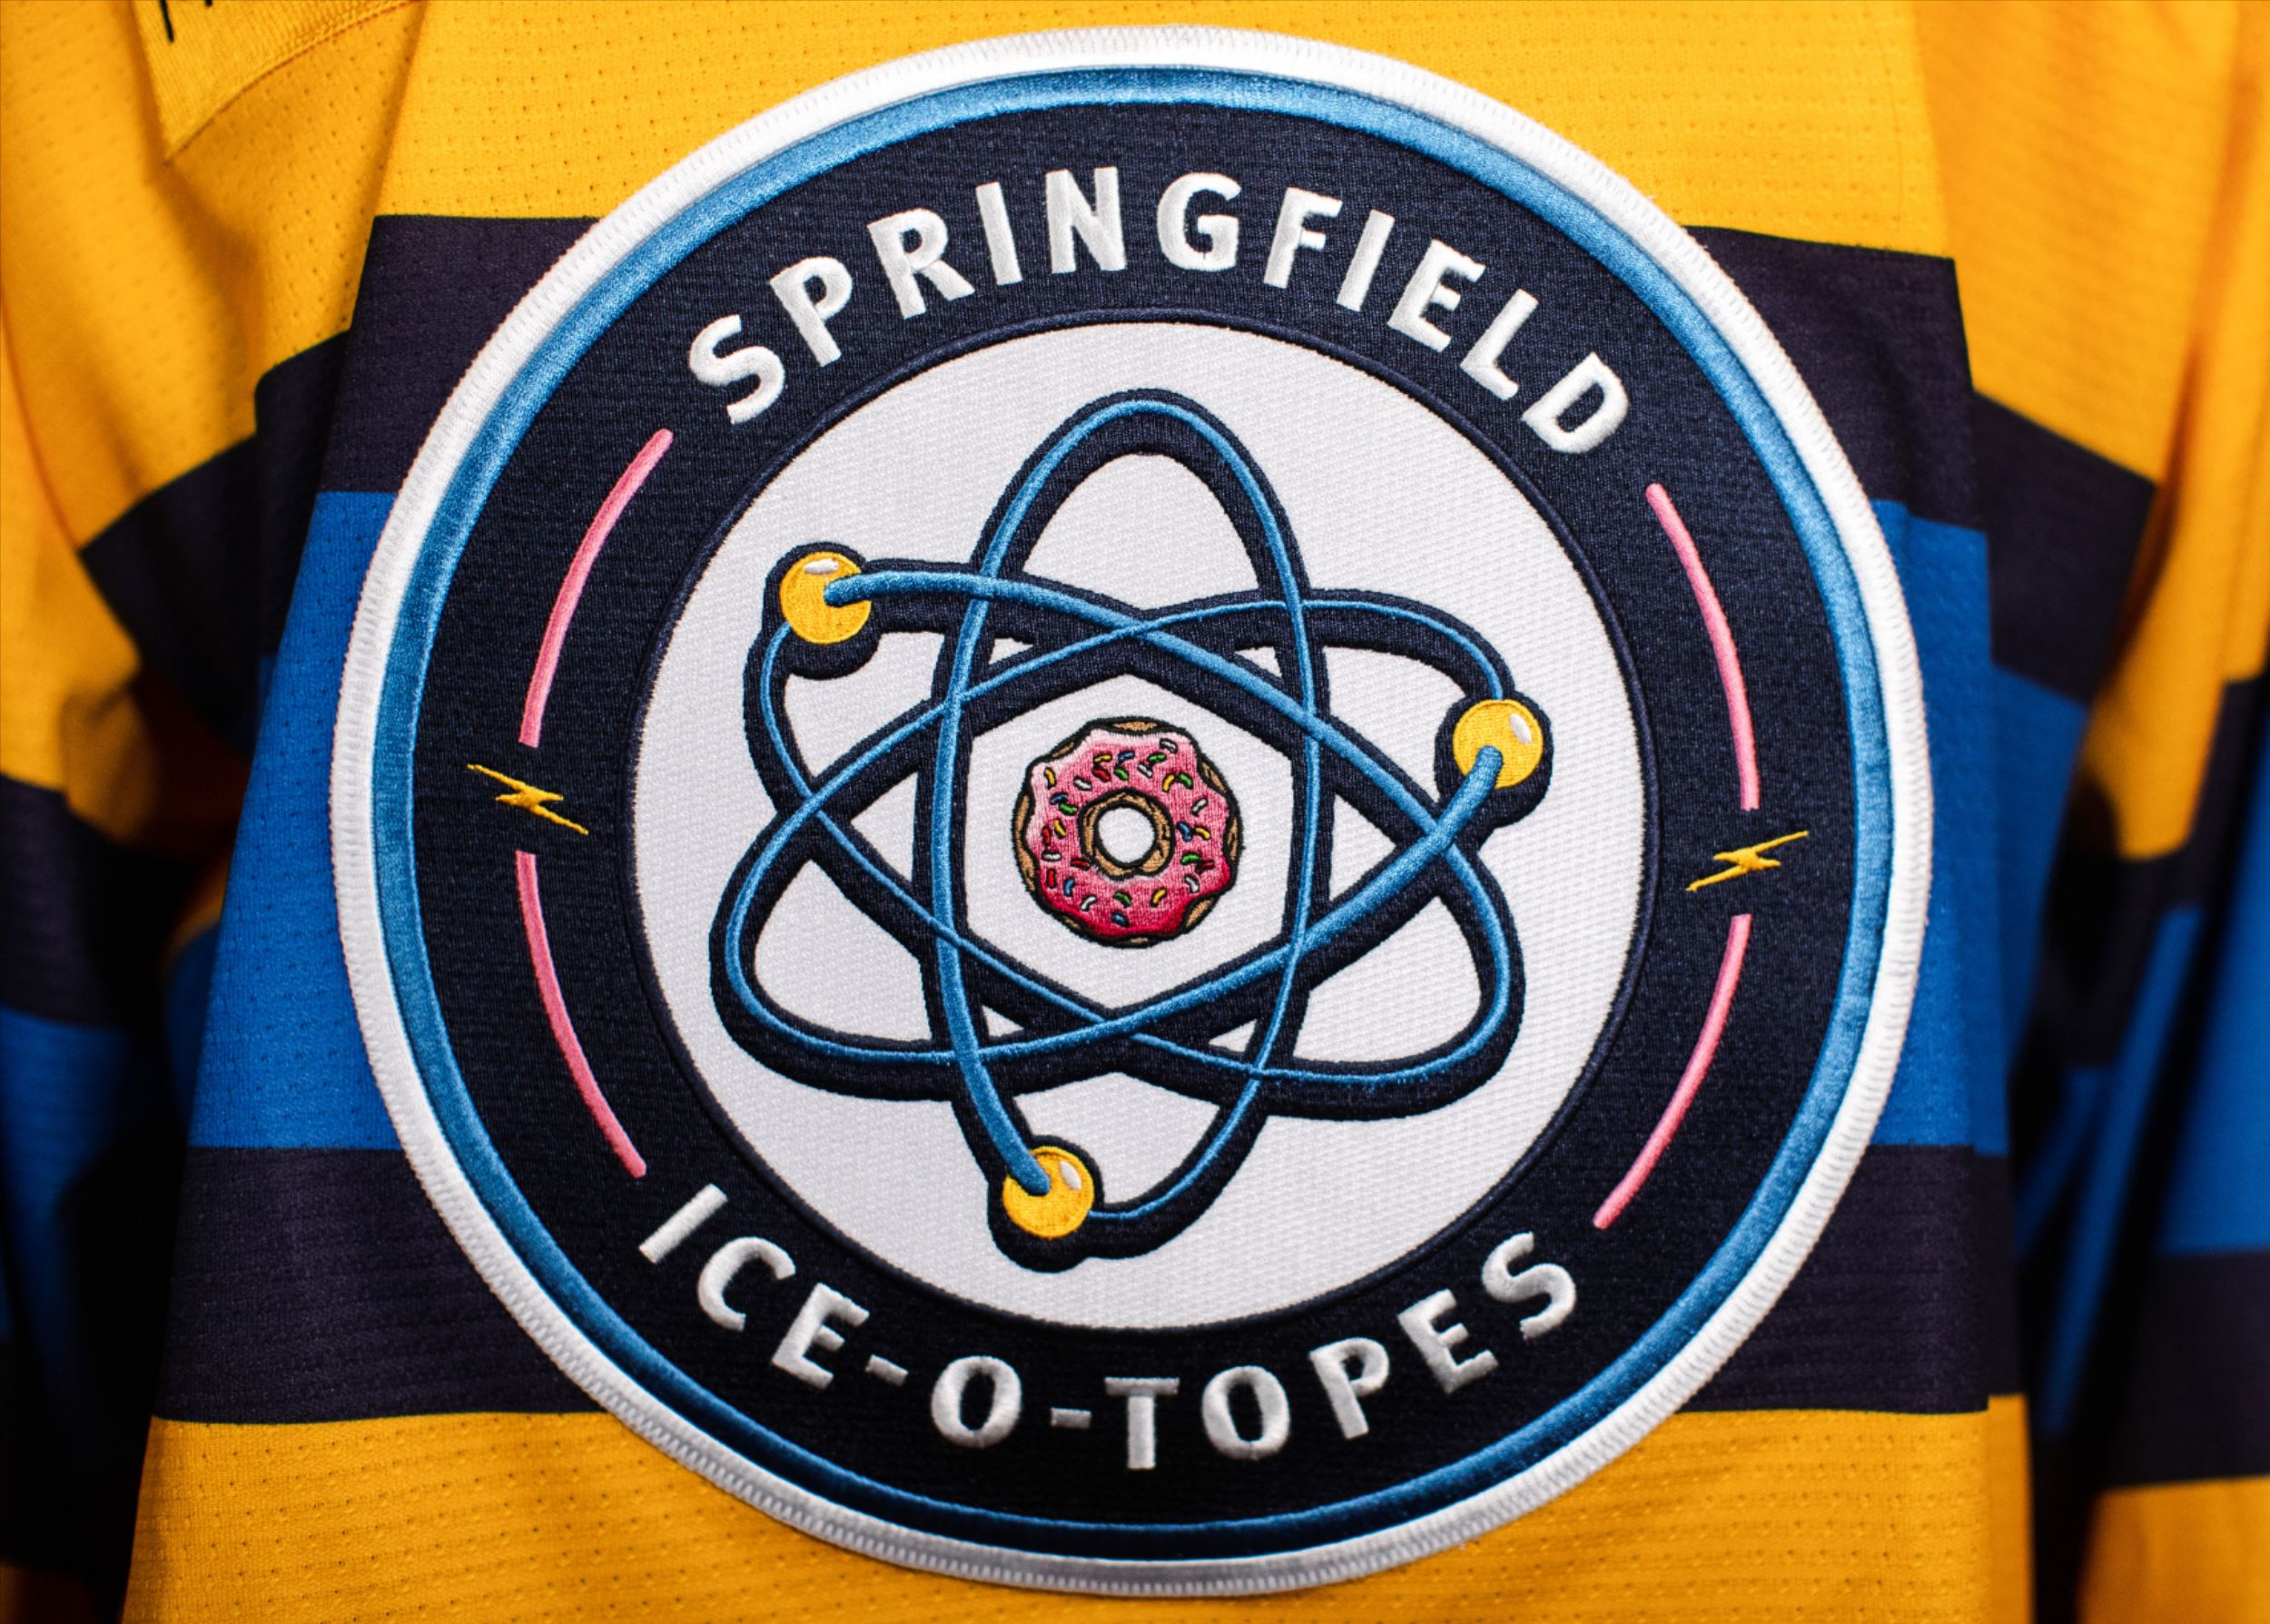 Ice-O-Topes Logo on Jersey